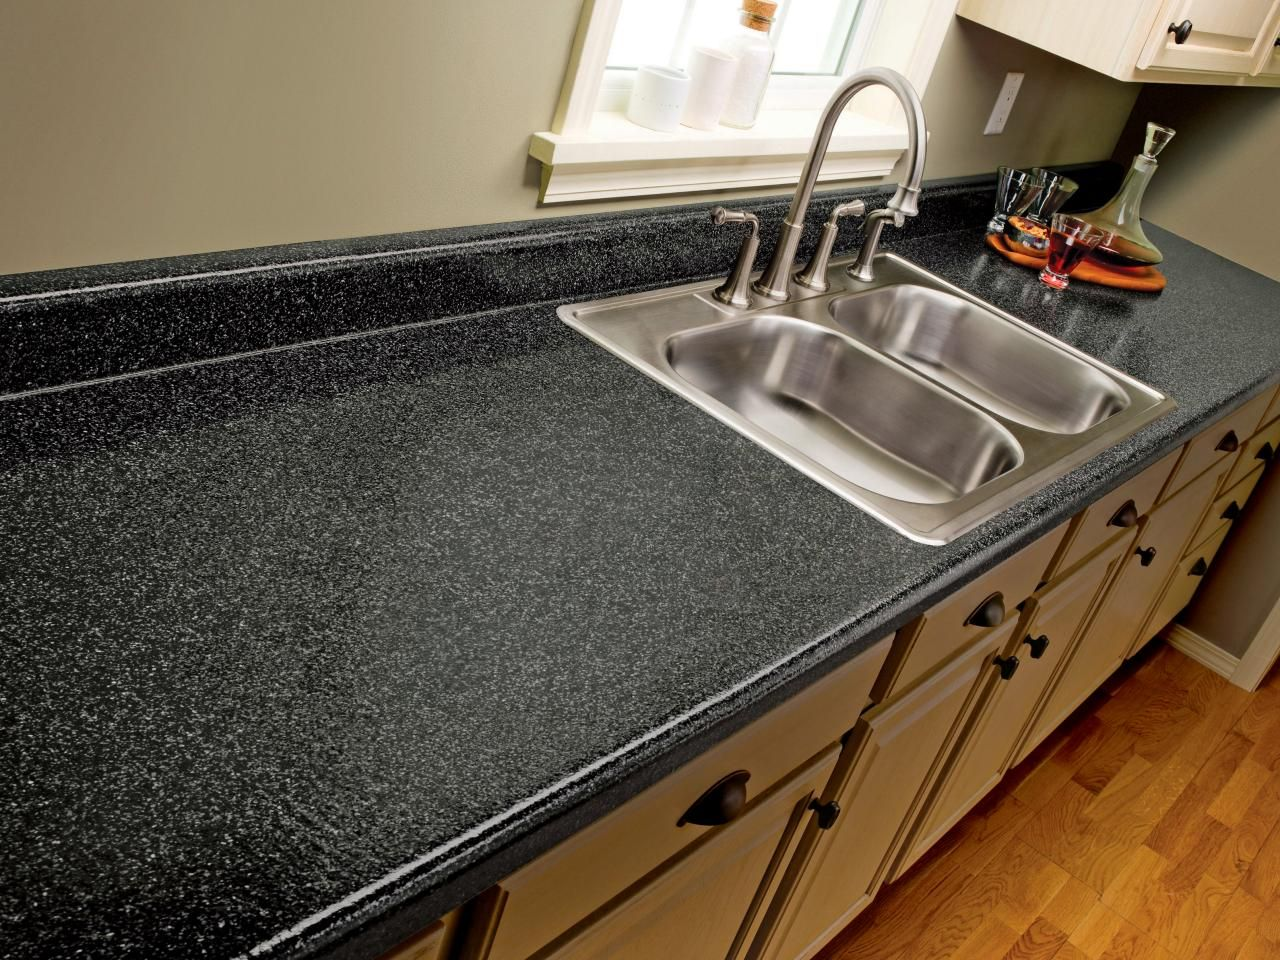 Uncategorized How To Paint Your Kitchen Countertops how to paint your laminate countertop coats stains and islands countertop